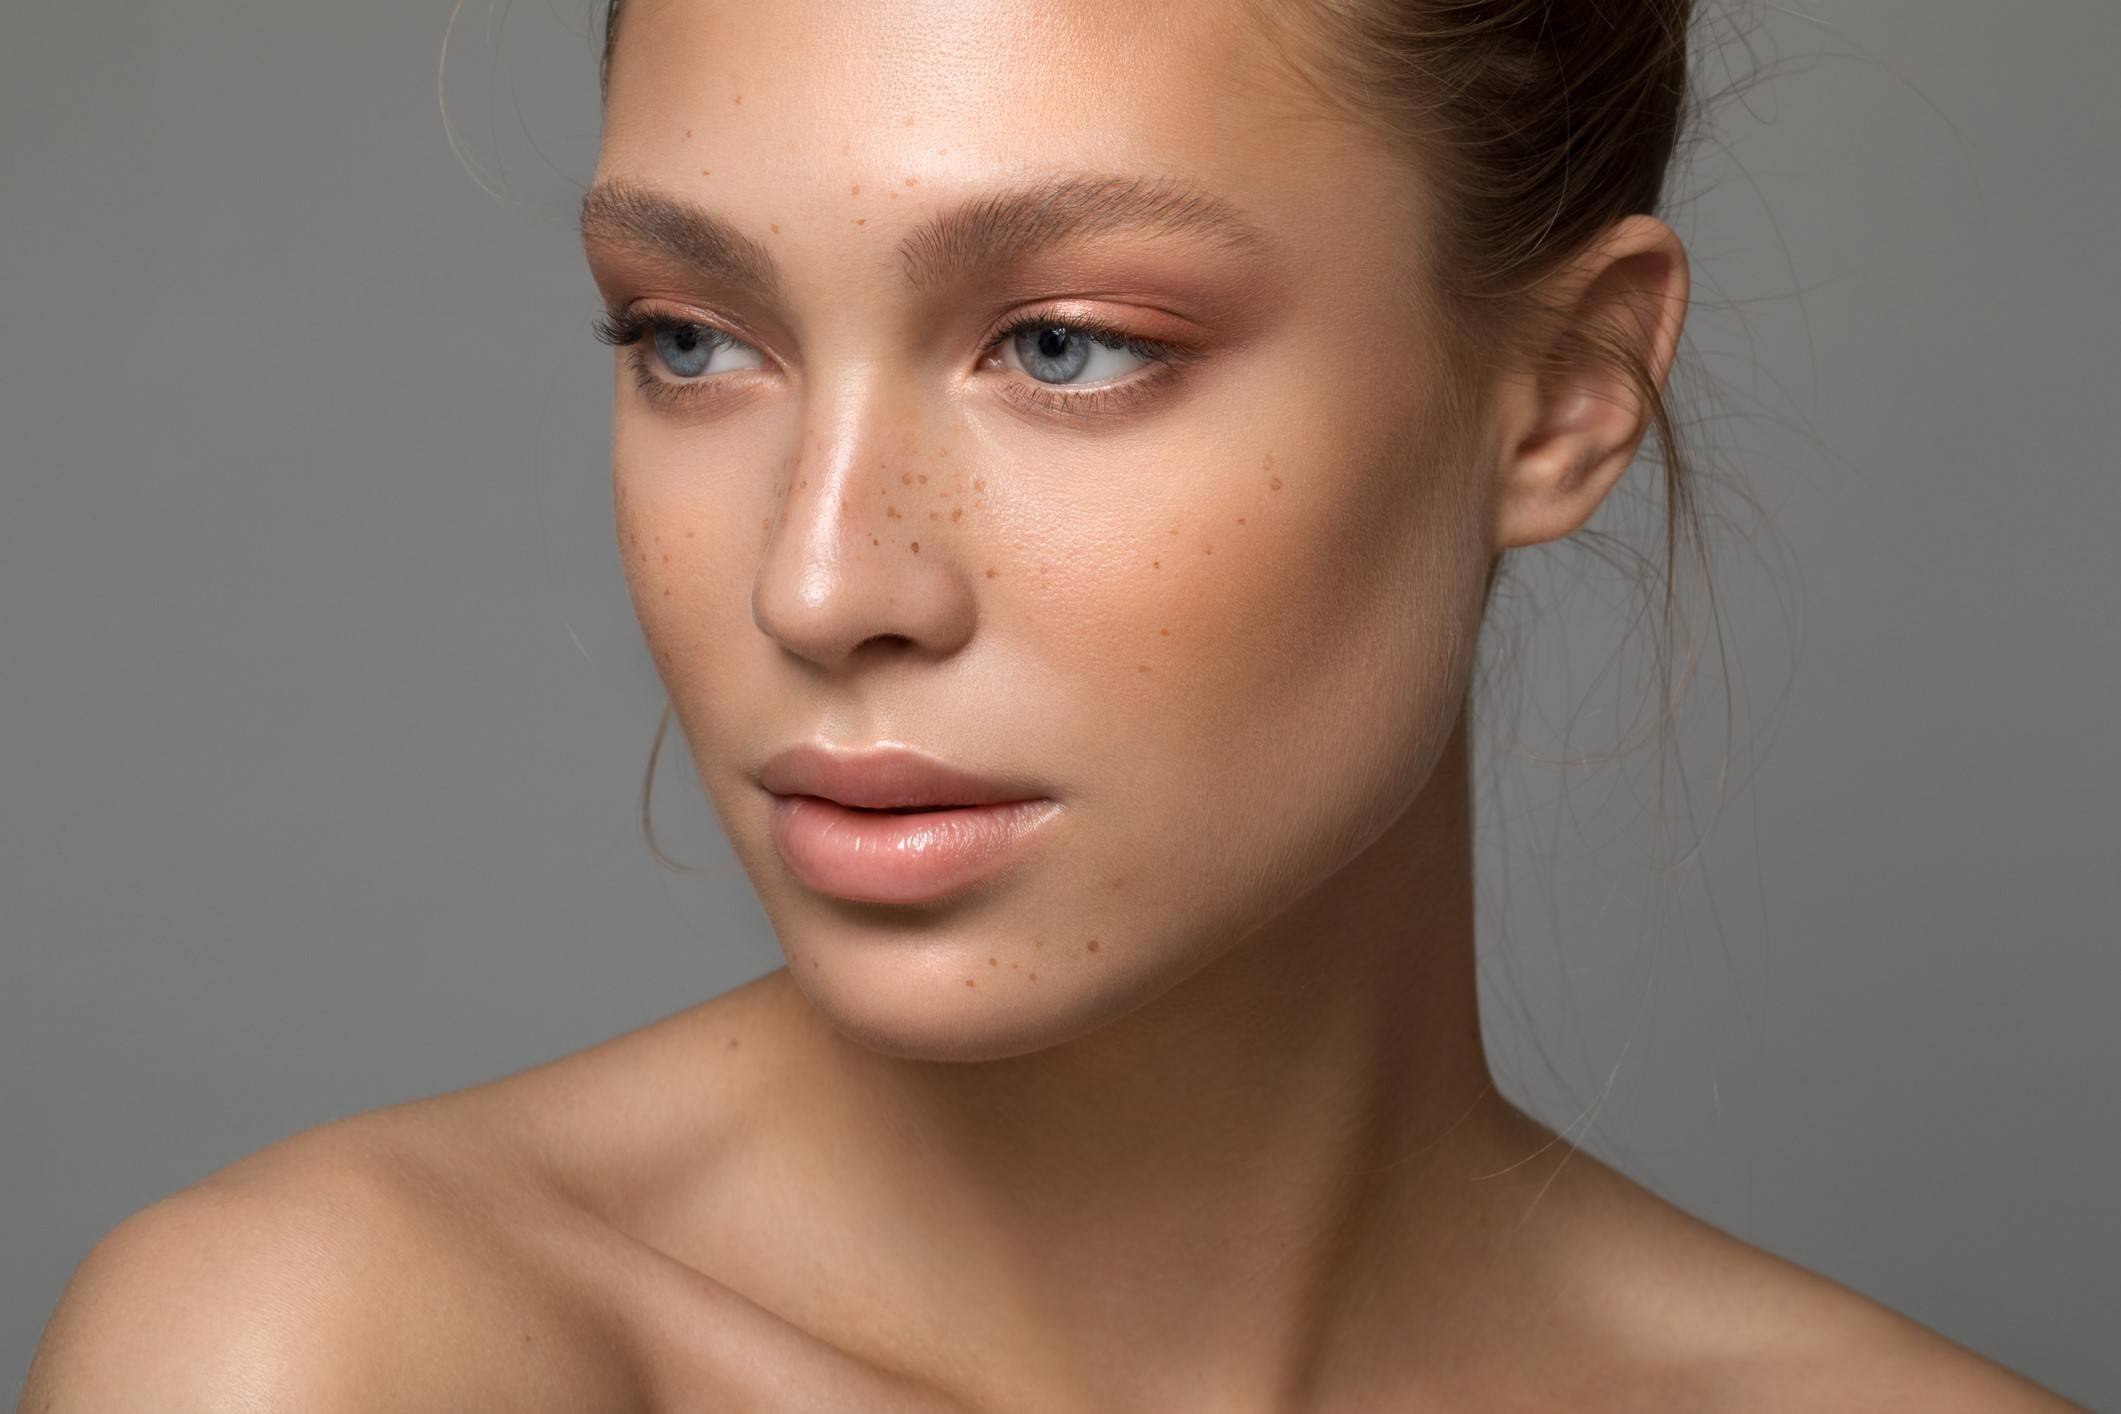 Enlarged pores treatment at the skin clinic